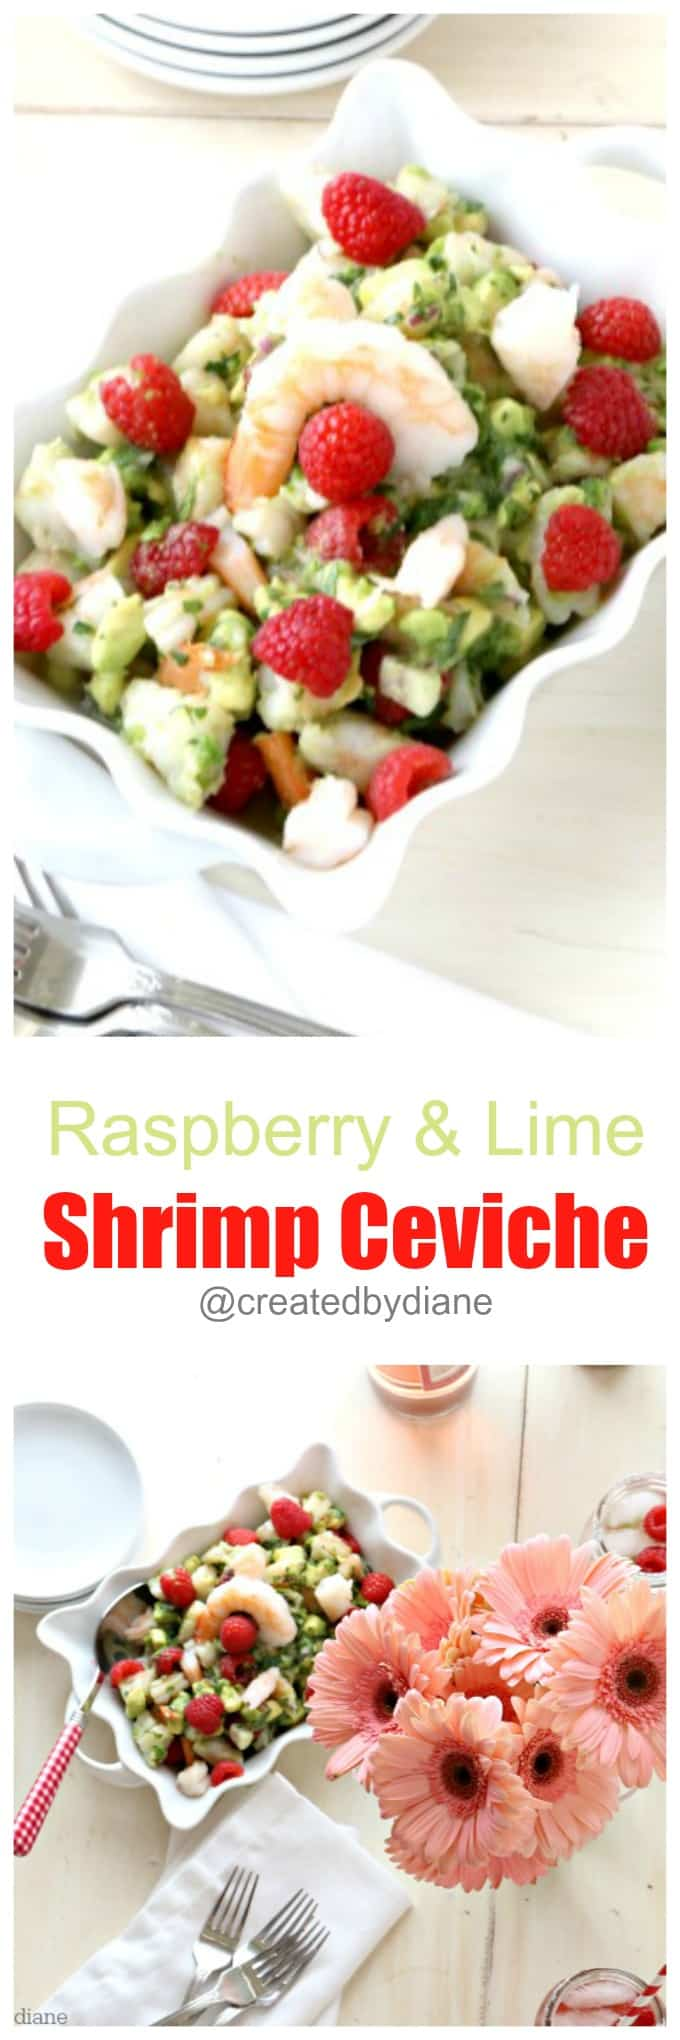 raspberry and lime shrimp ceviche @createdbydiane